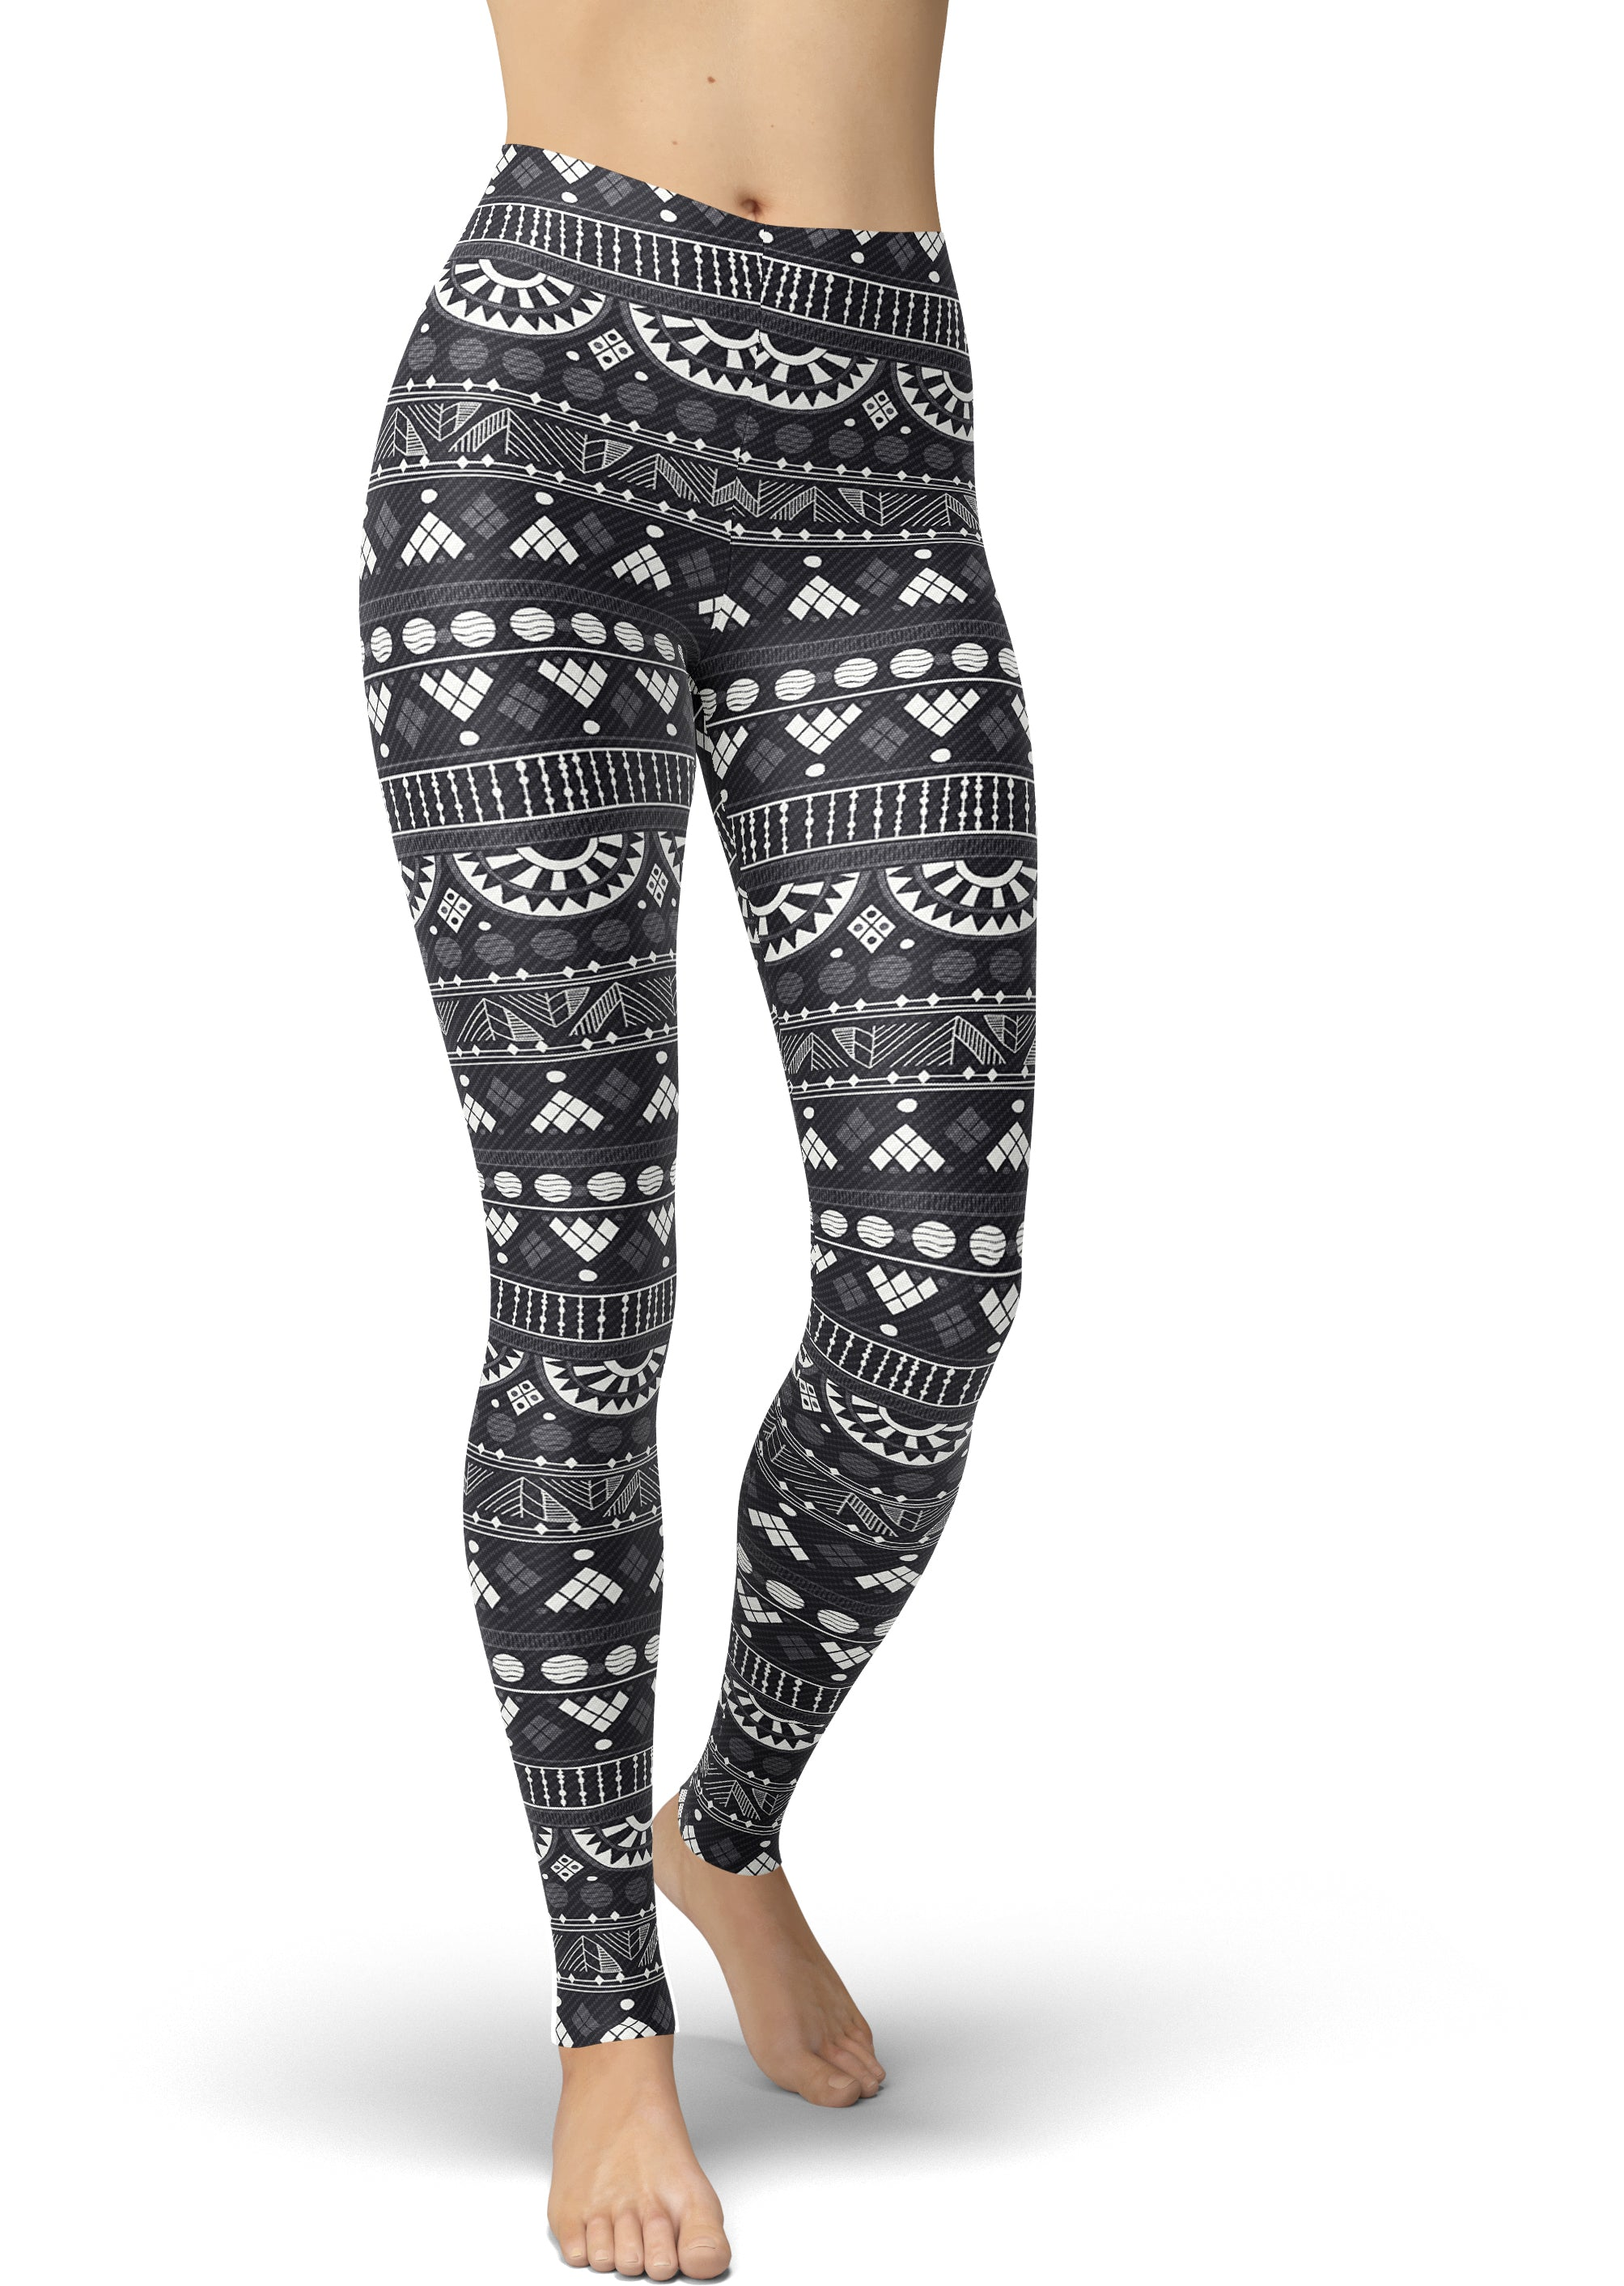 Grayscale Tribal Print Leggings